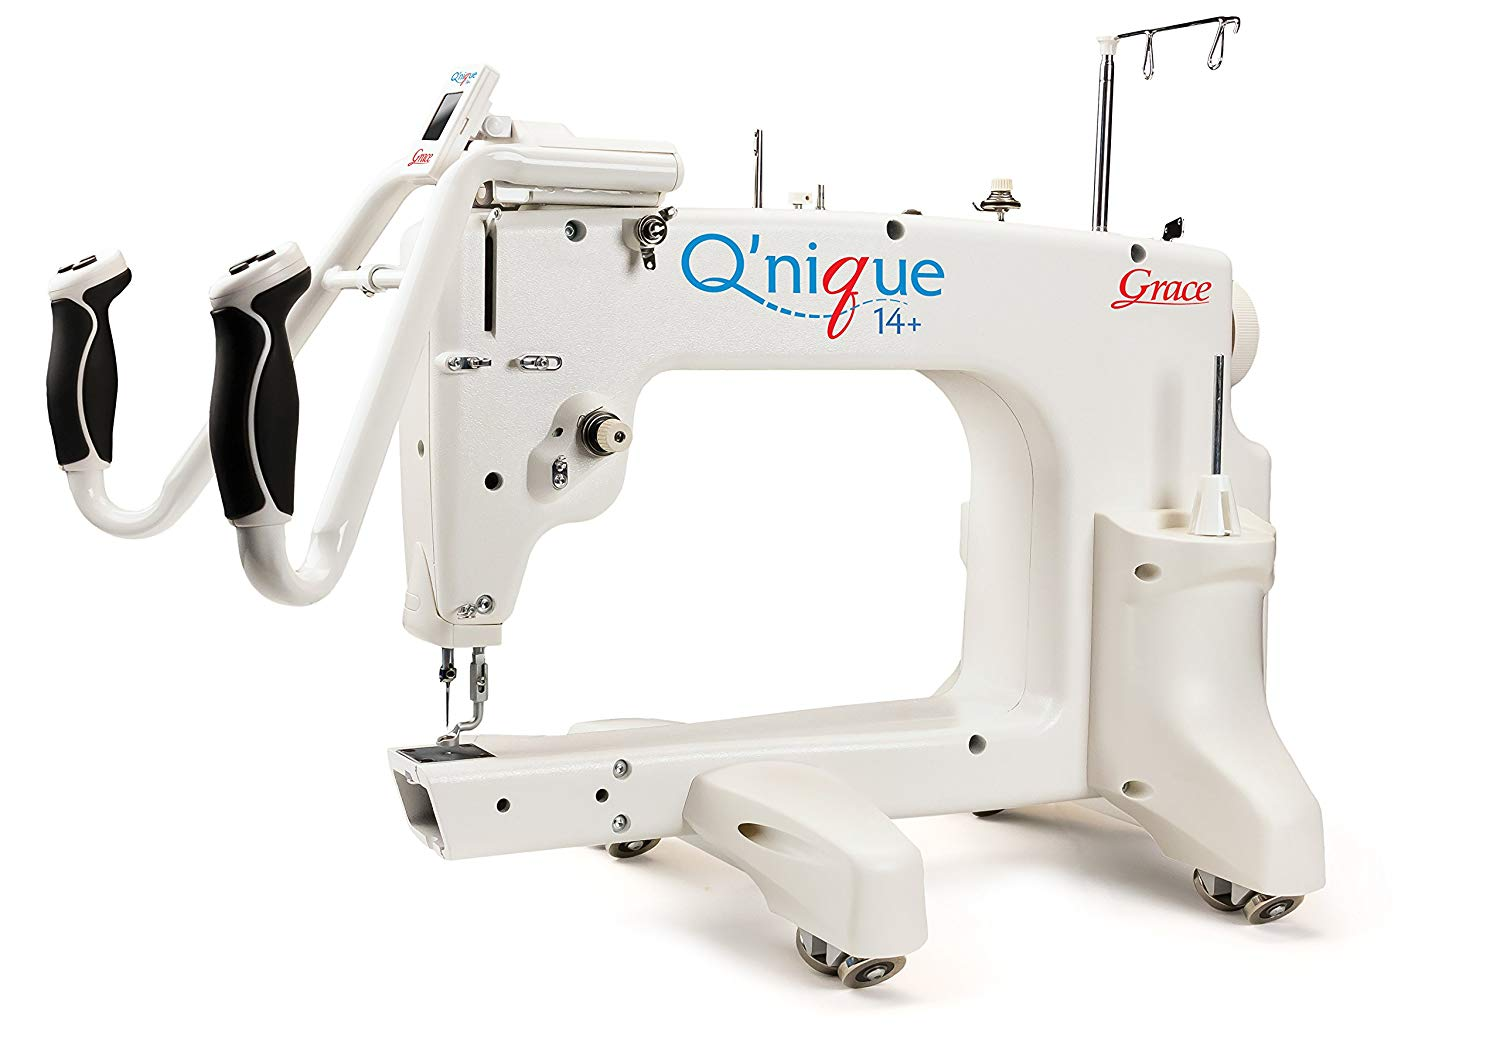 Grace Q nique Long Arm Quilting Machine